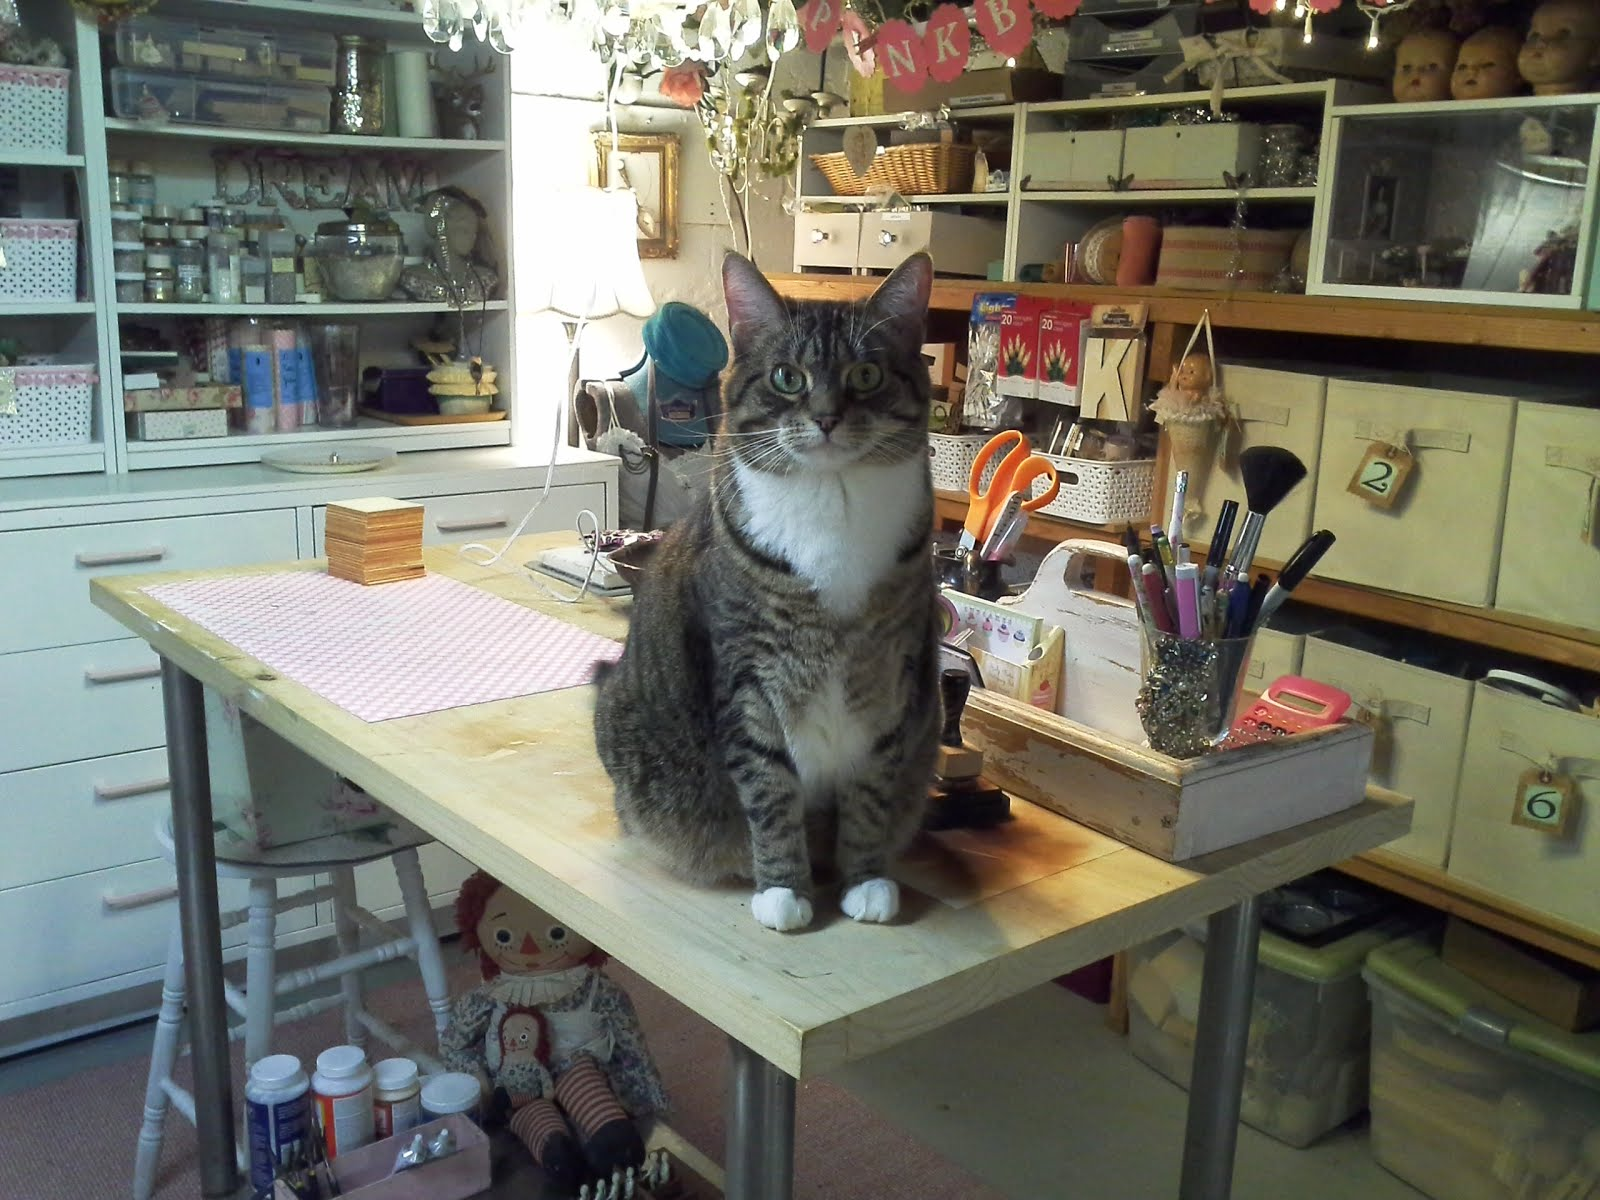 Jersey, my craft room helper